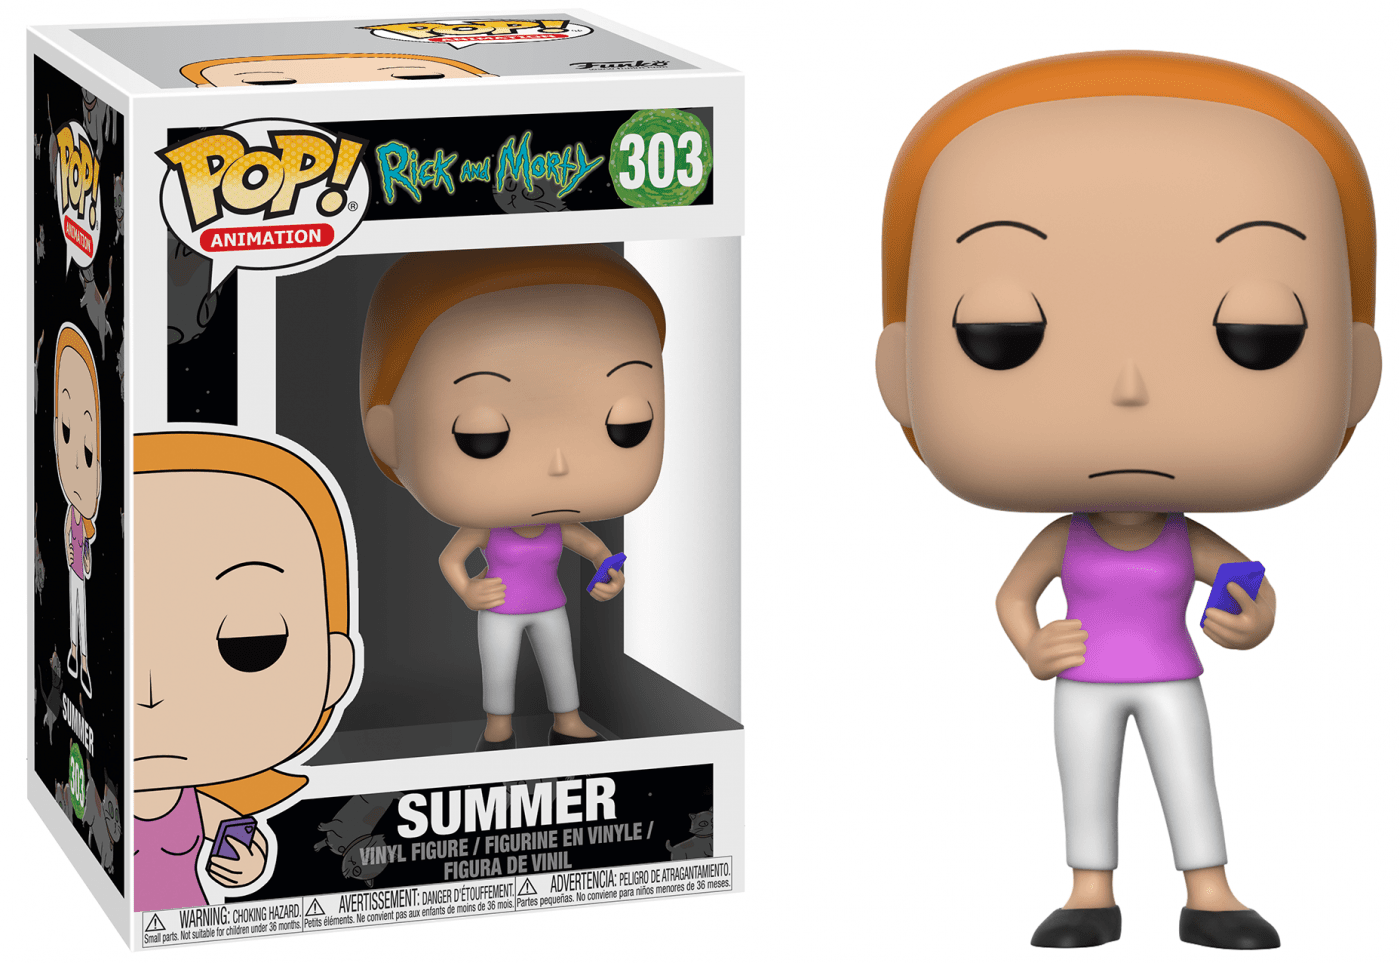 Funko Pop - Rick And Morty - Summer 303